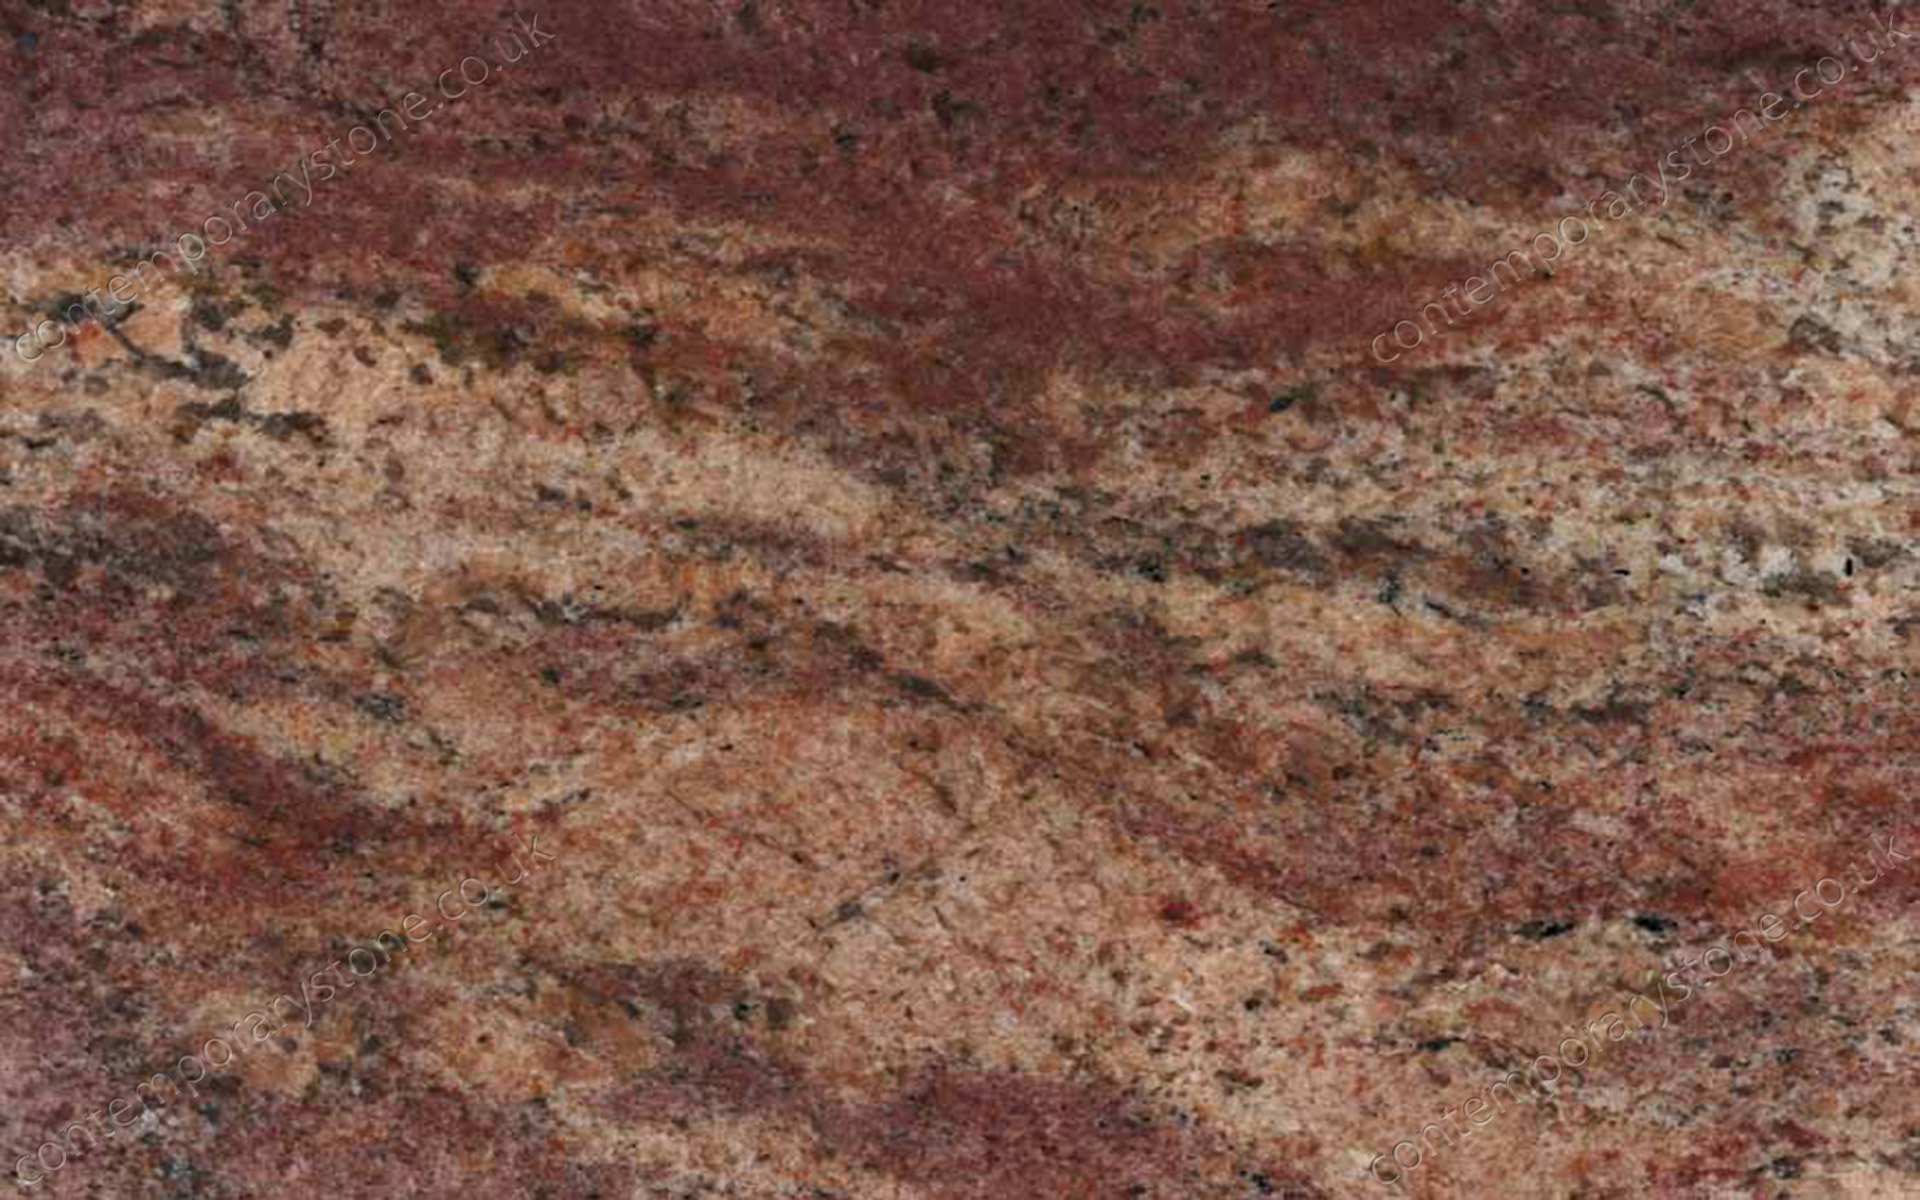 Crema Bordeaux granite close-up